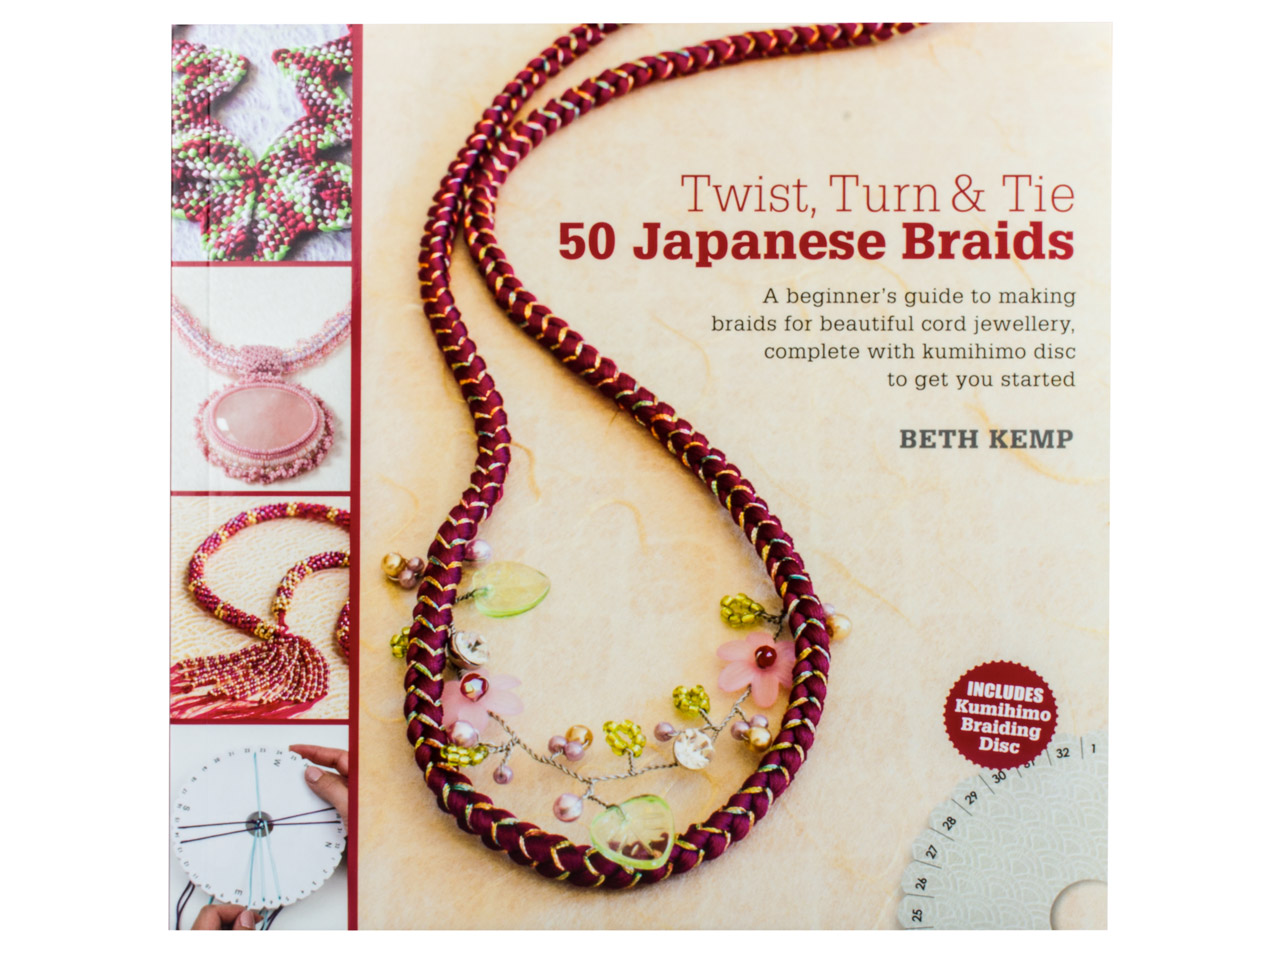 Twist, Turn & Tie: 50 Japanese Braids, Beth Kemp